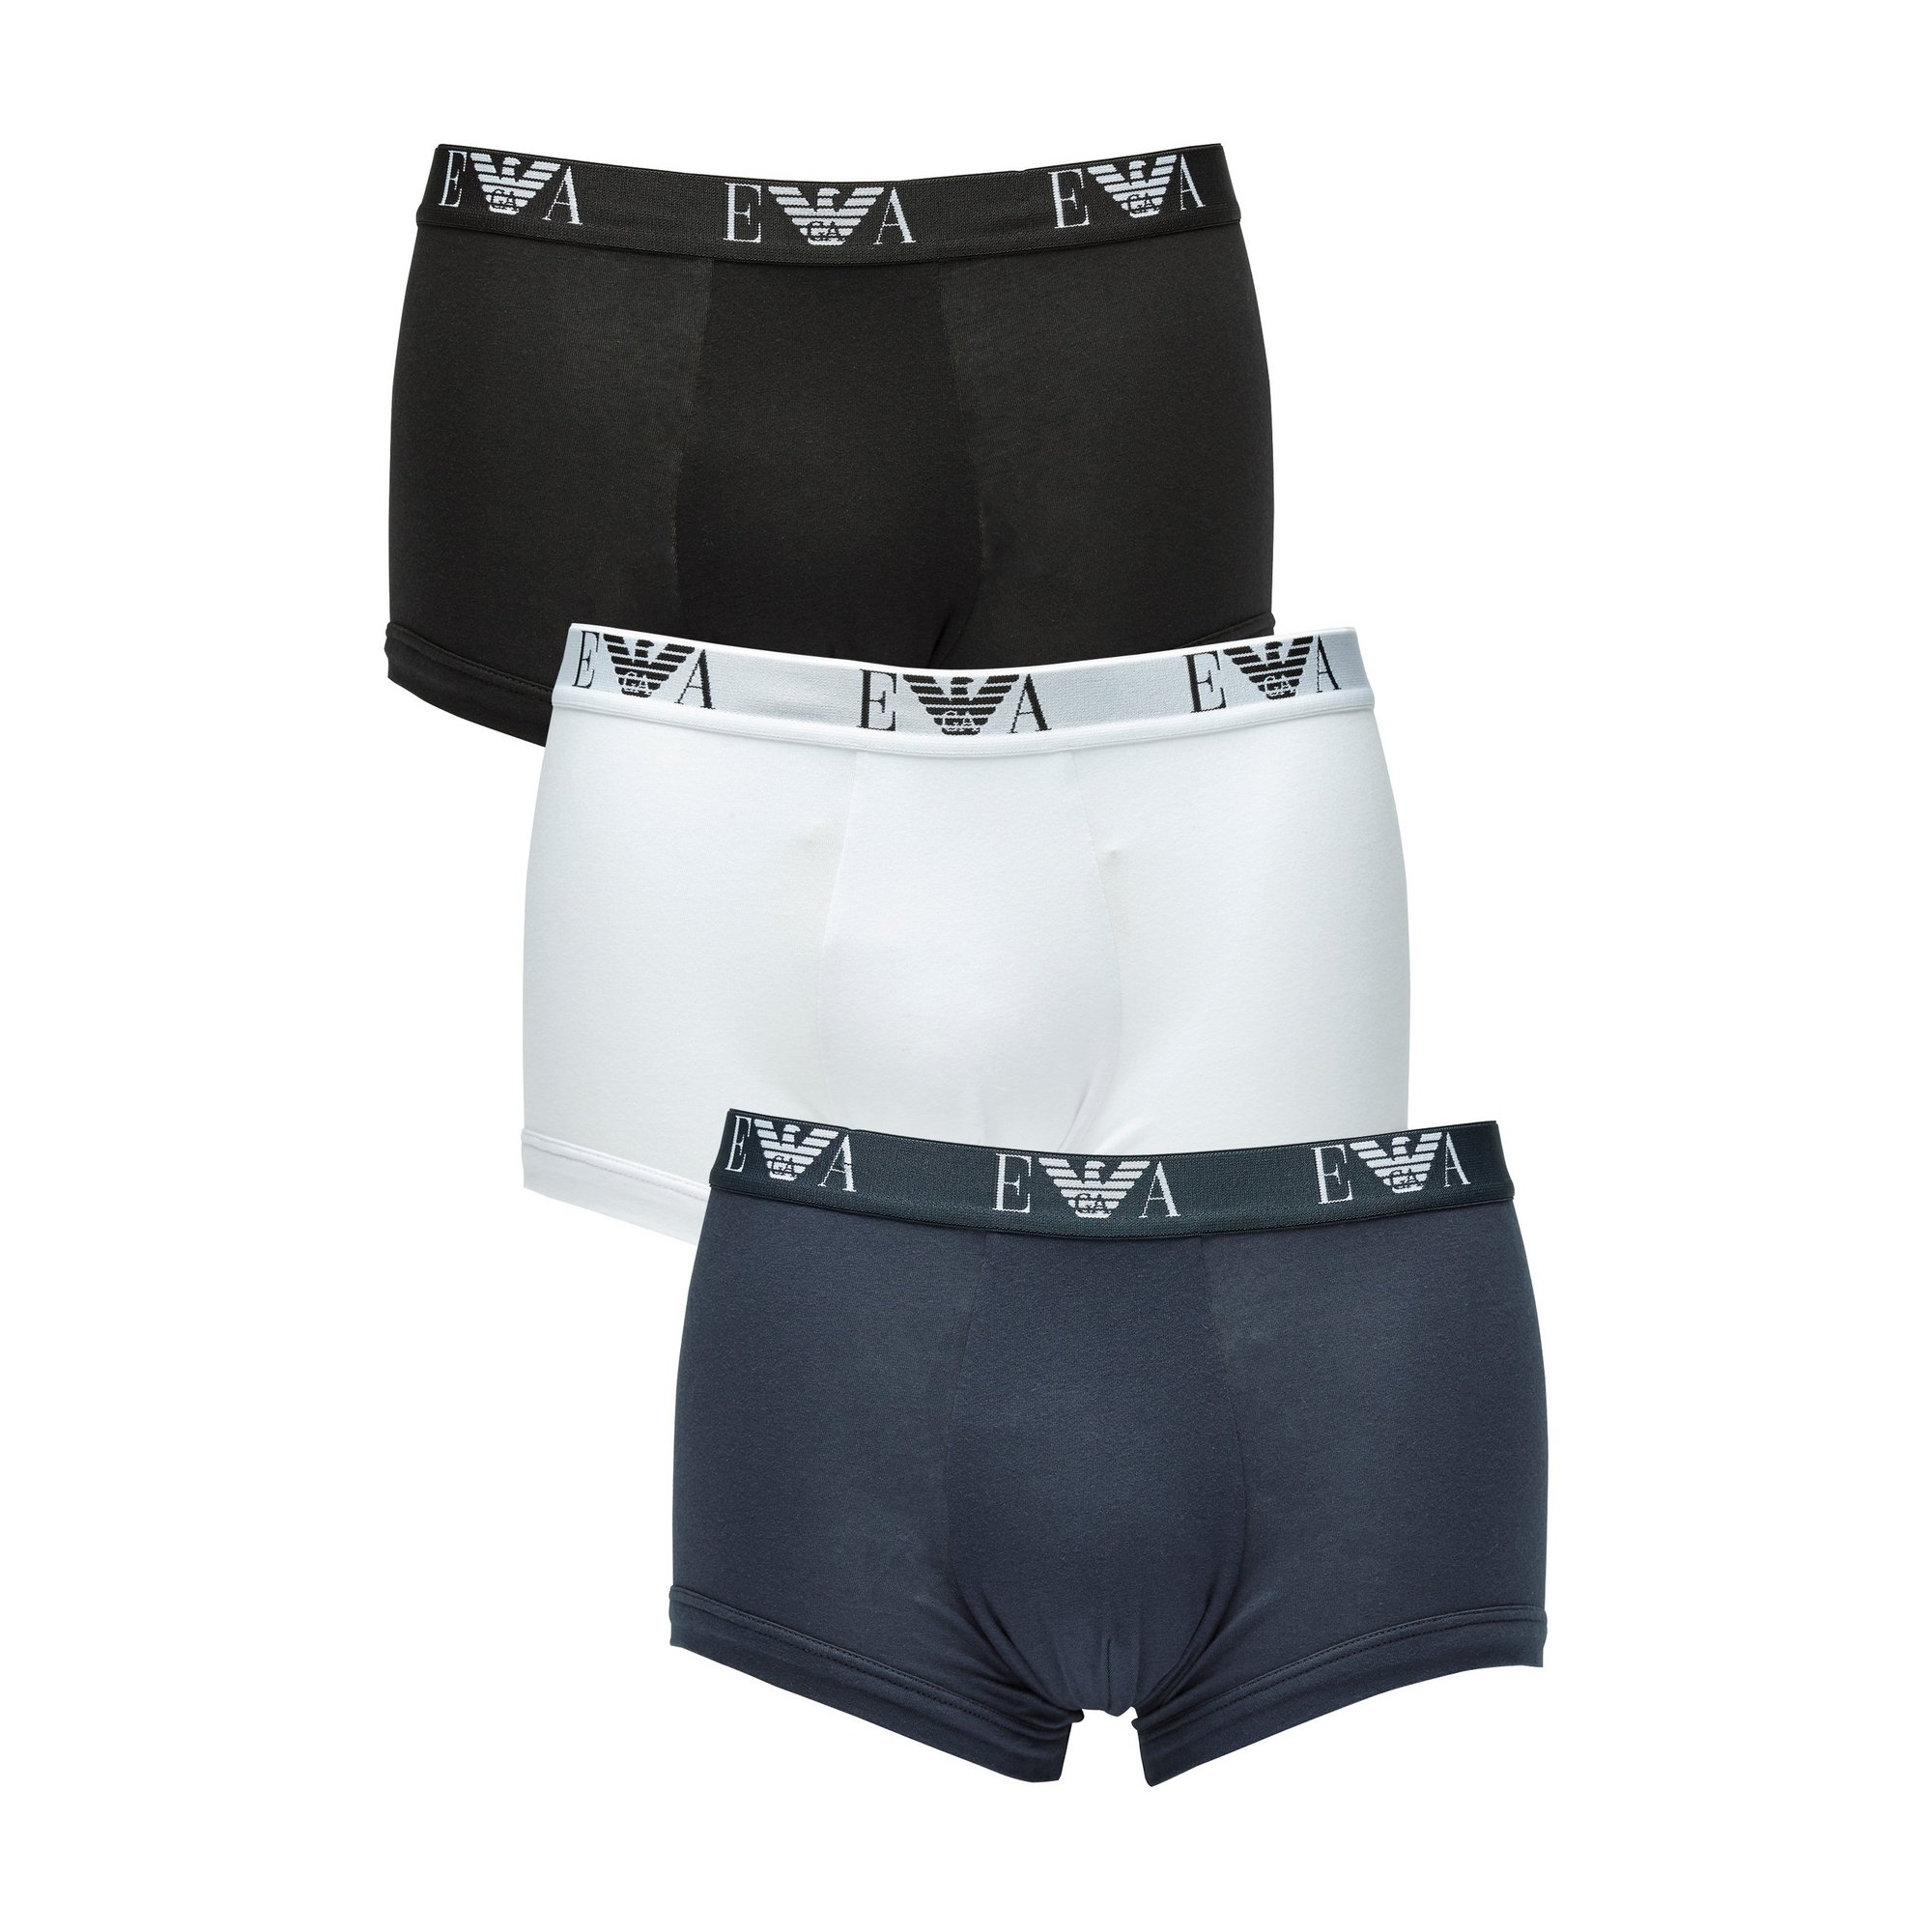 Image of Emporio Armani Core Pack of 3 Trunks